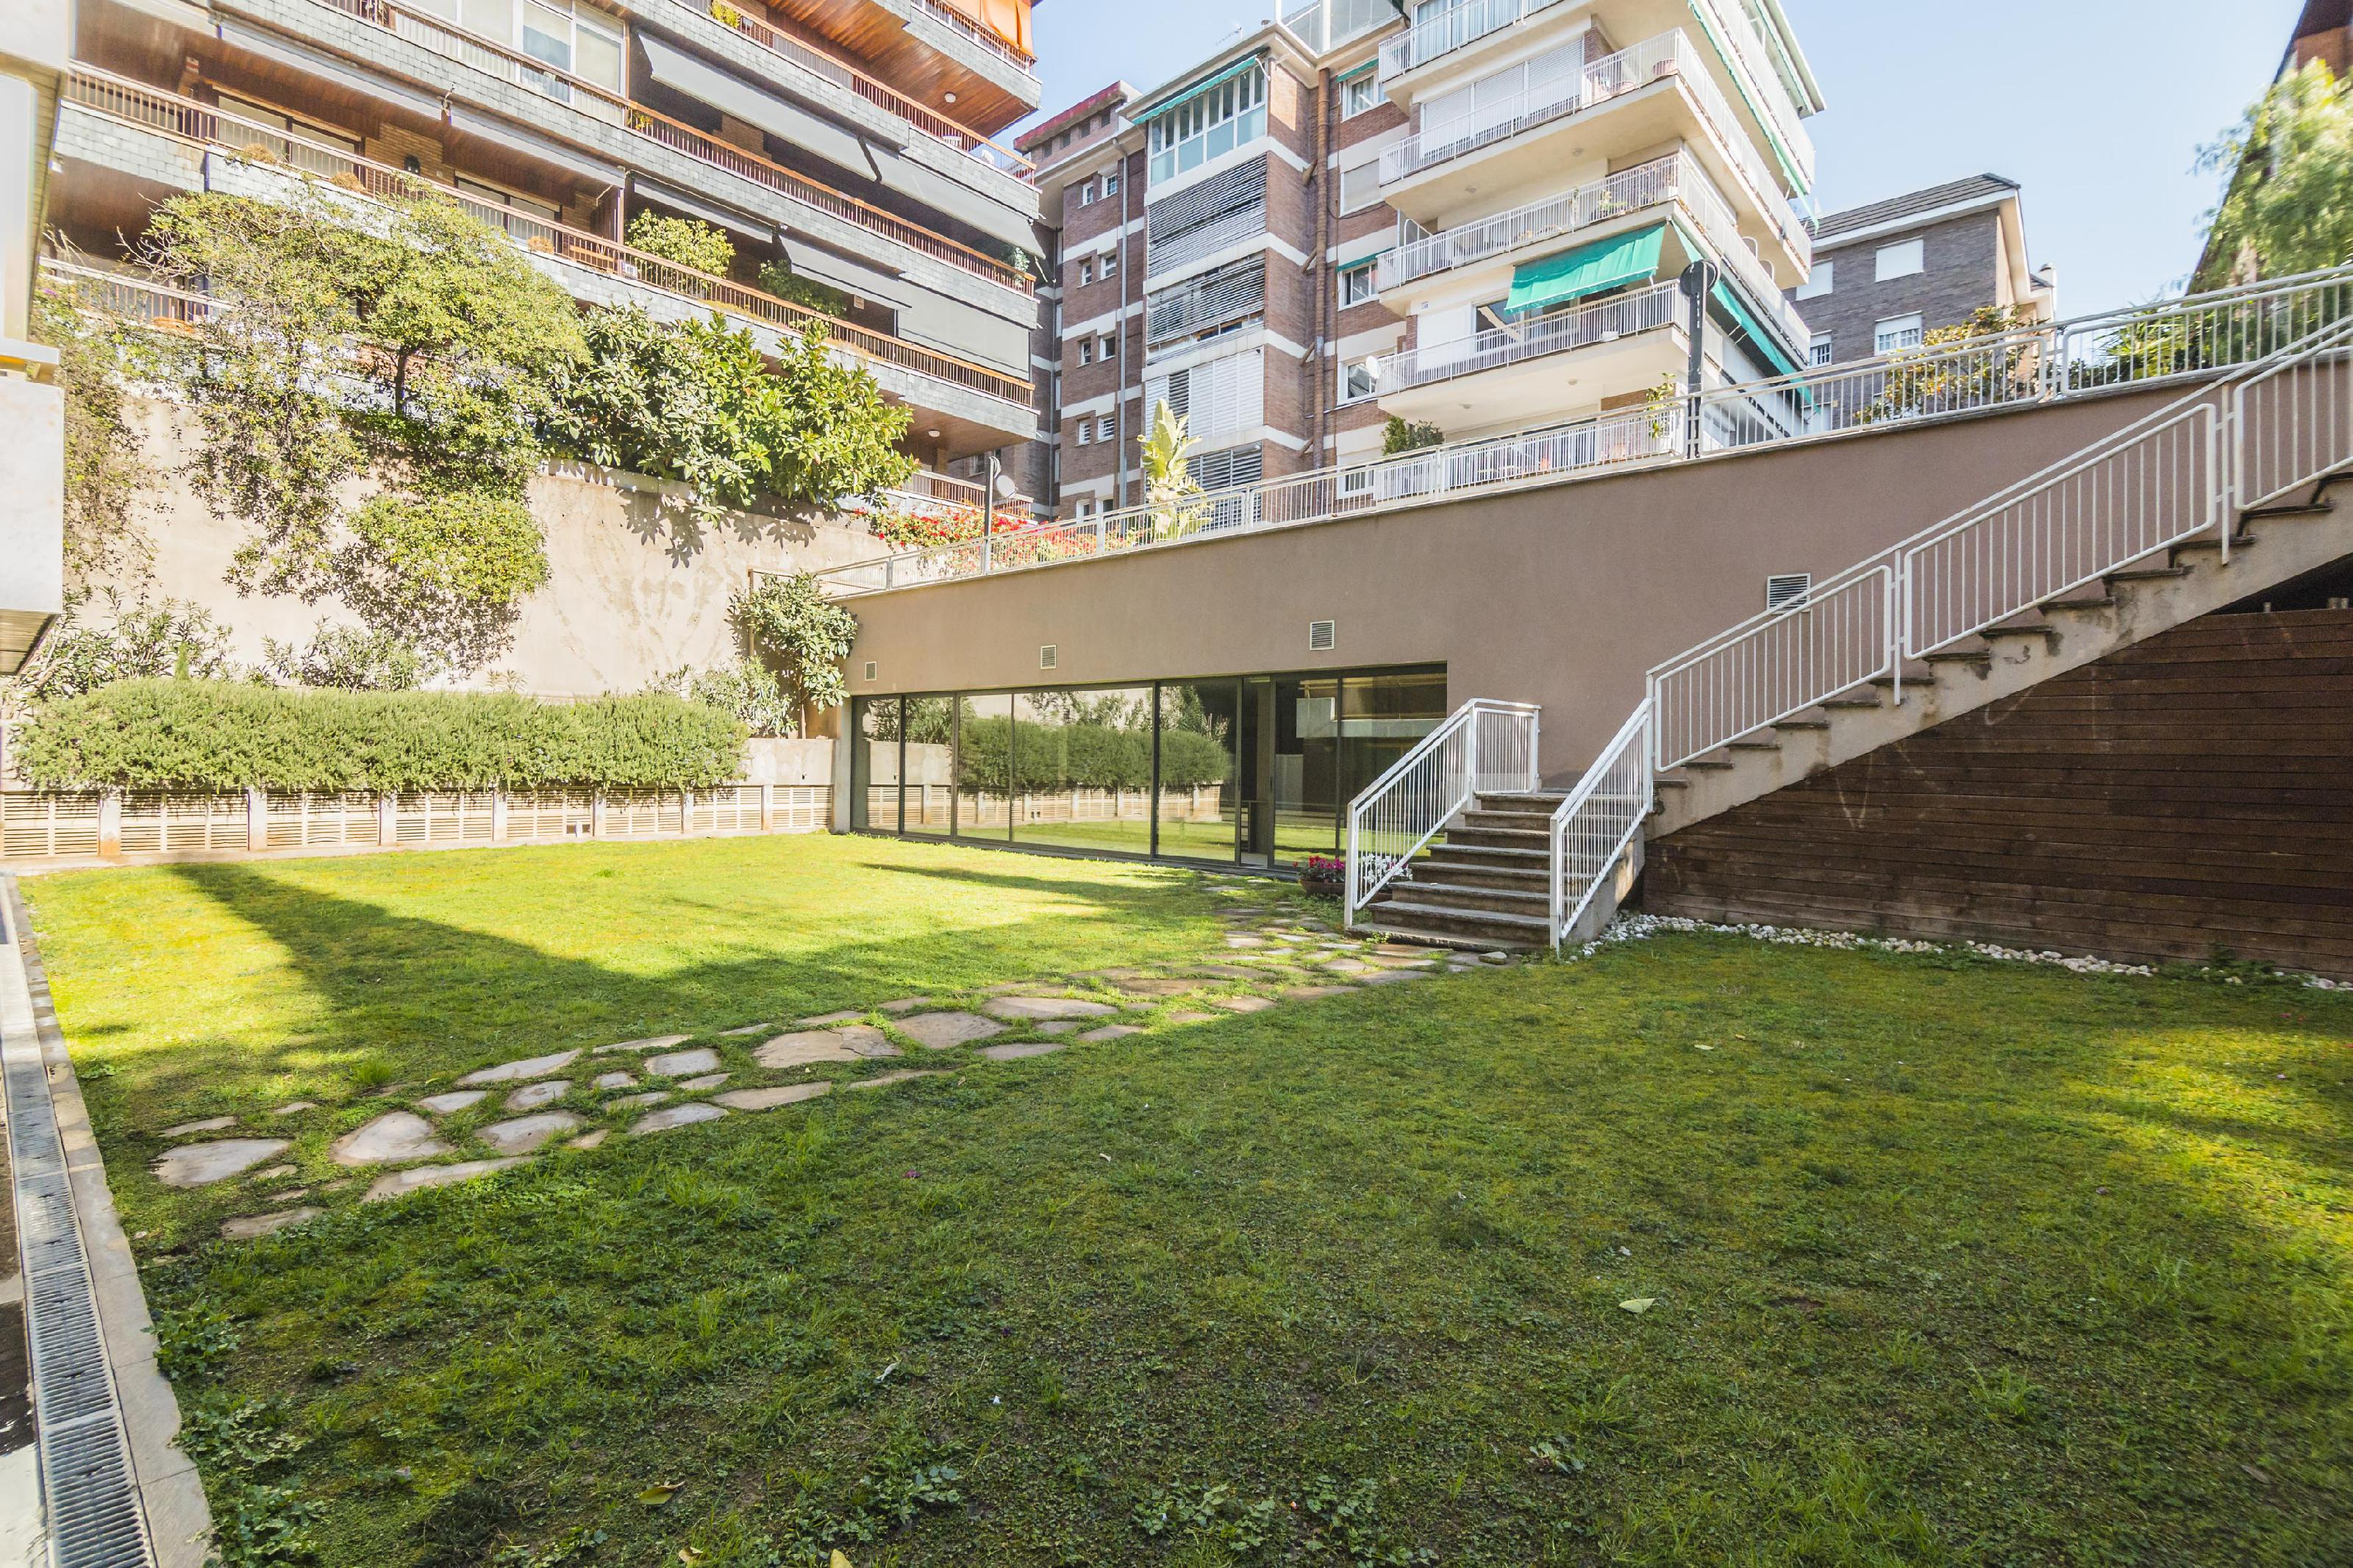 221811 Apartment for sale in Sarrià-Sant Gervasi, Tres Torres 20